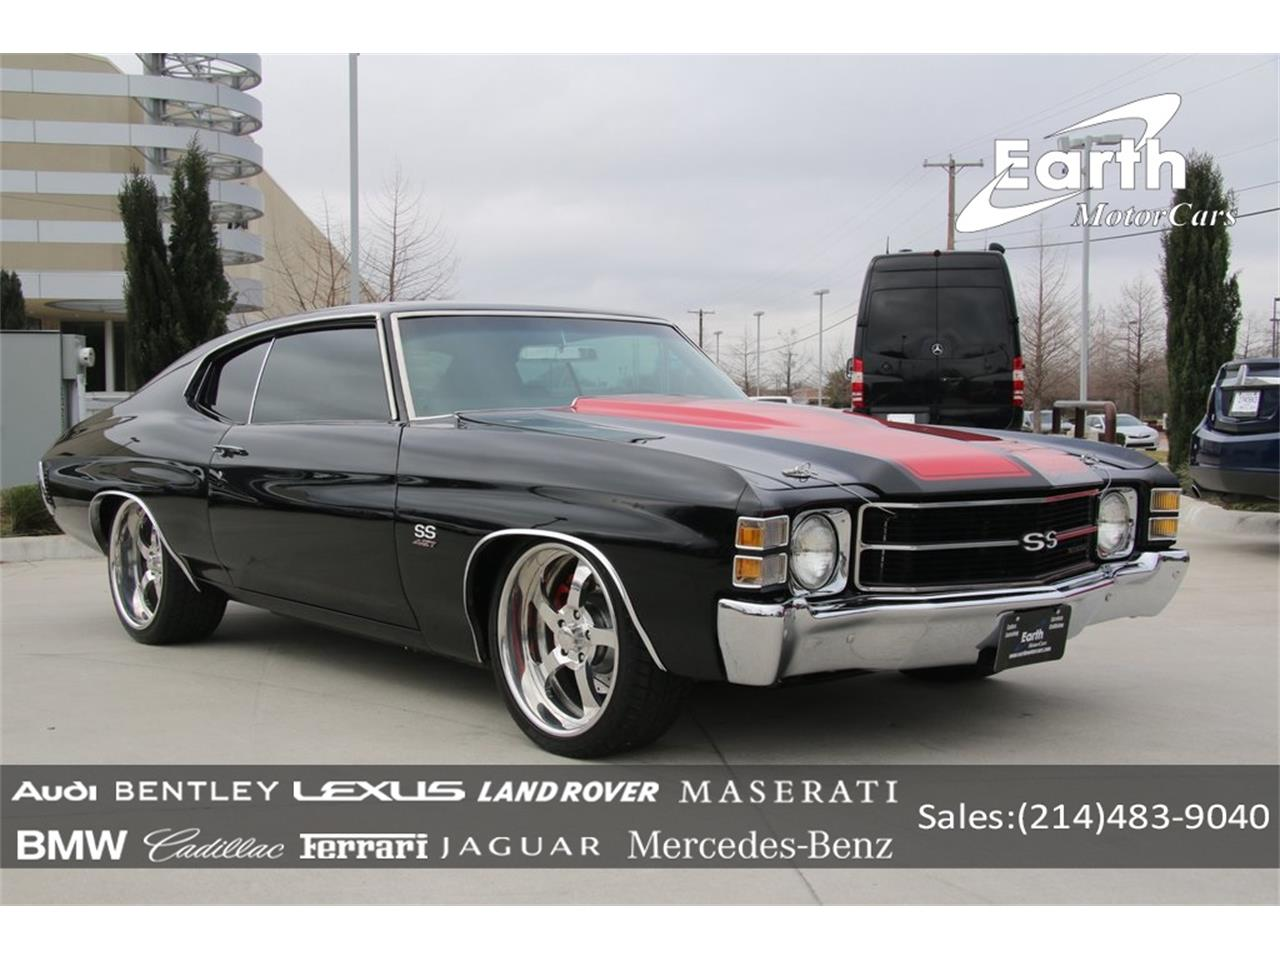 For Sale: 1971 Chevrolet Chevelle SS in Carrollton, Texas